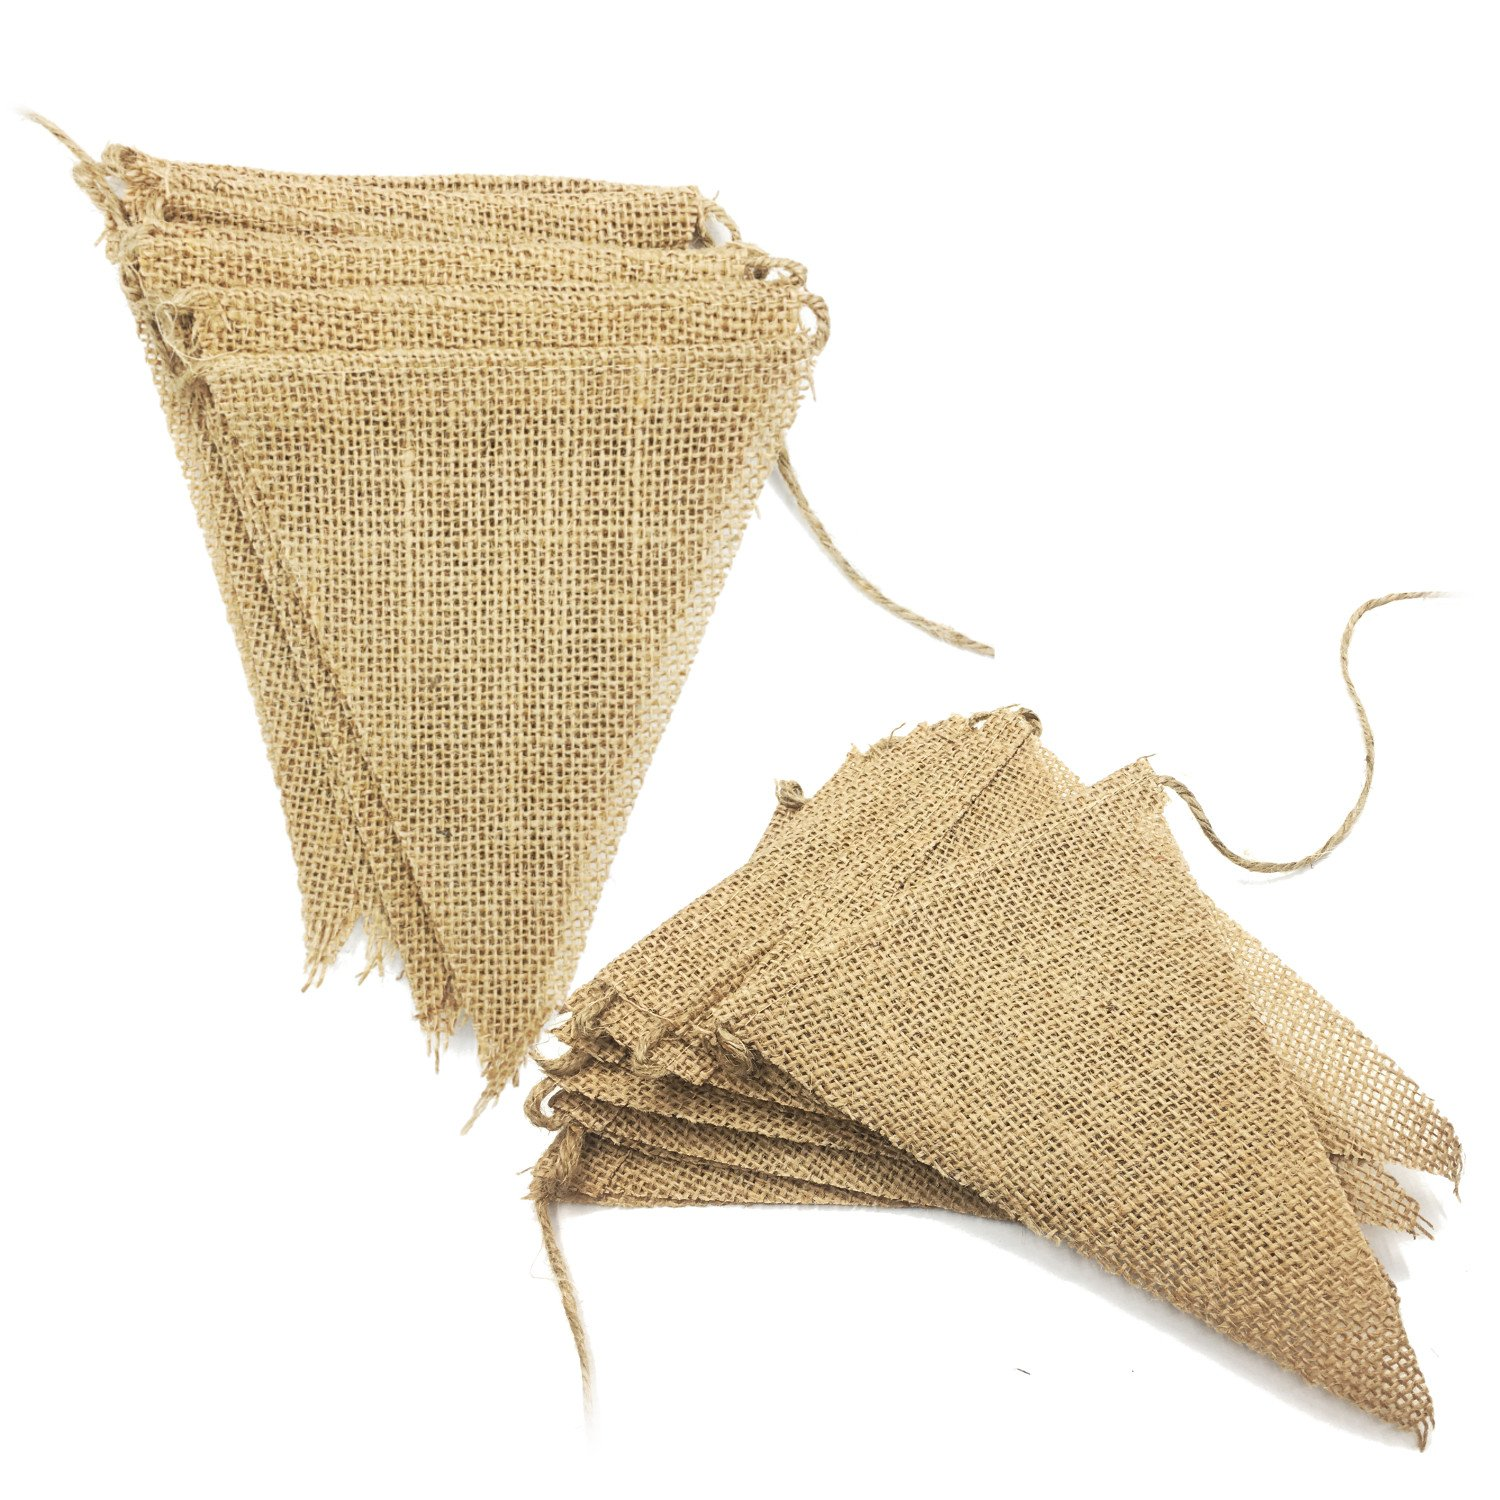 Ovee Lando 2.7m Burlap Banner Vintage Bunting Banner with 13pcs Flags DIY Wedding Birthday Party Decoration 2 pack   B01CZQXNSC